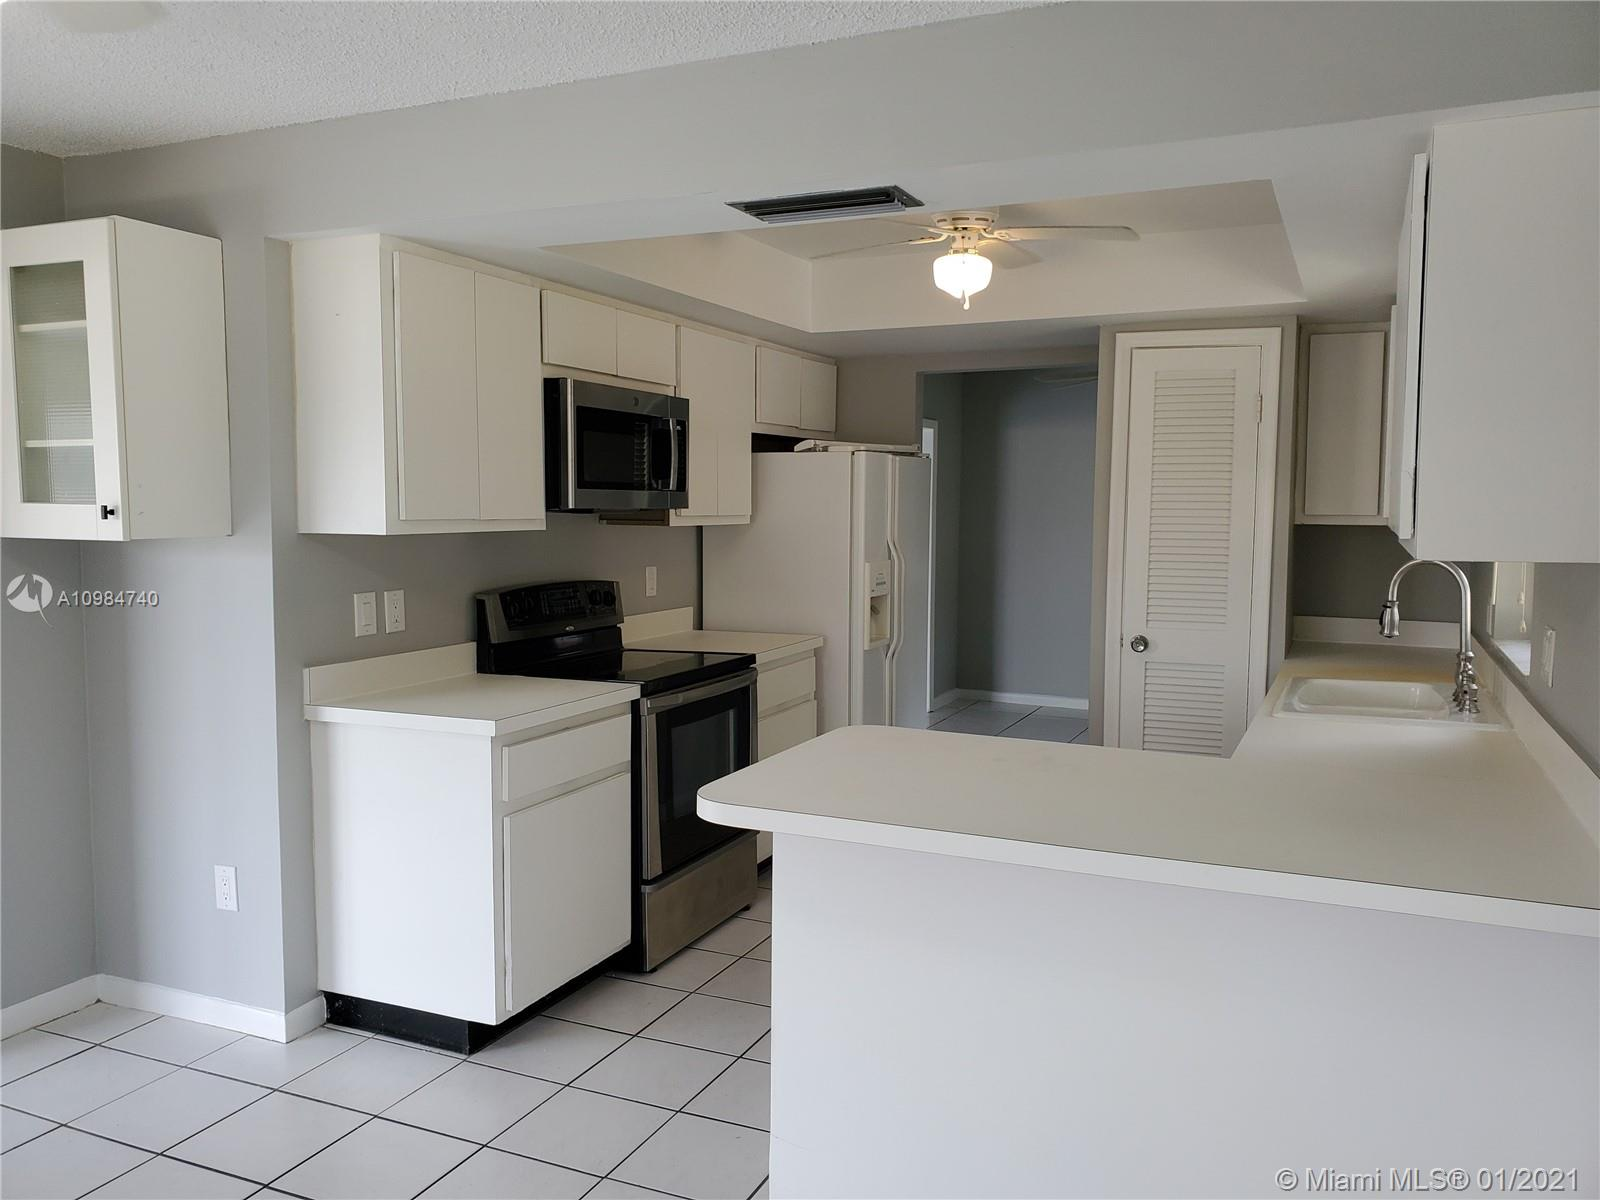 22616 SW 64th Way, Boca Raton, Florida 33428, 3 Bedrooms Bedrooms, ,2 BathroomsBathrooms,Residential Lease,For Rent,22616 SW 64th Way,A10984740